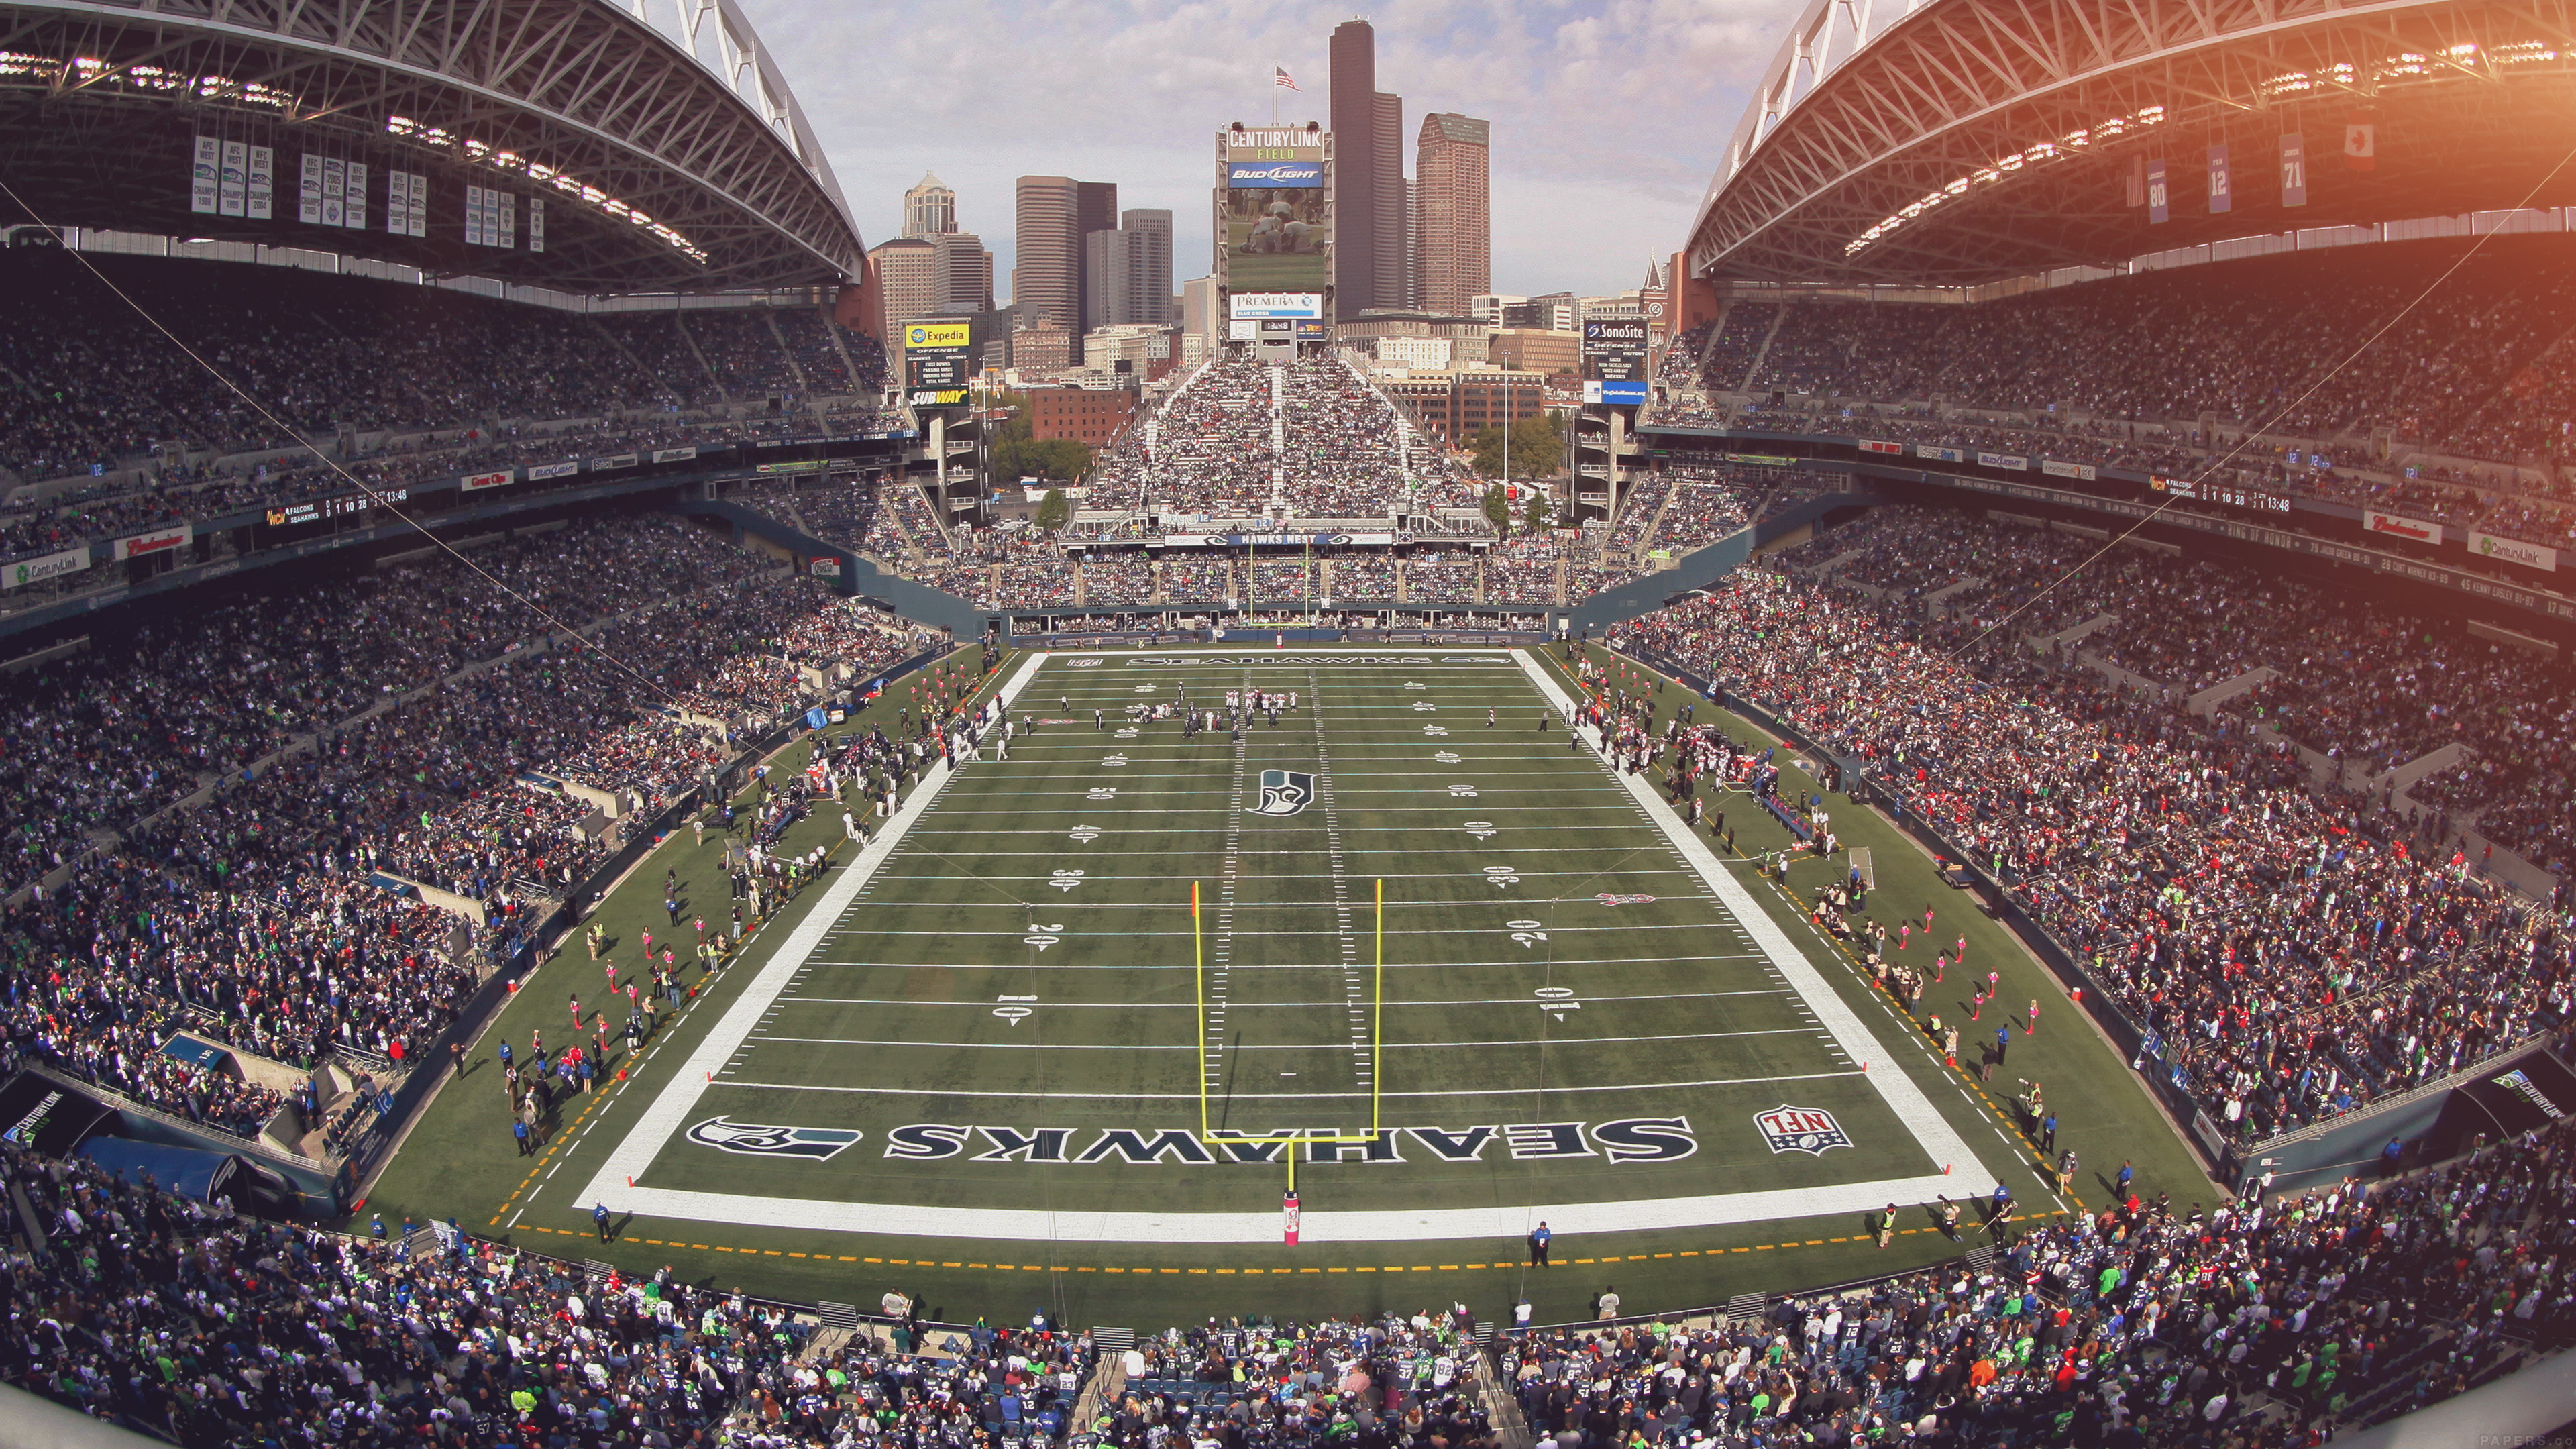 Fall Macbook Wallpaper Mp98 Seahawks Seattle Sports Stadium Football Nfl Papers Co